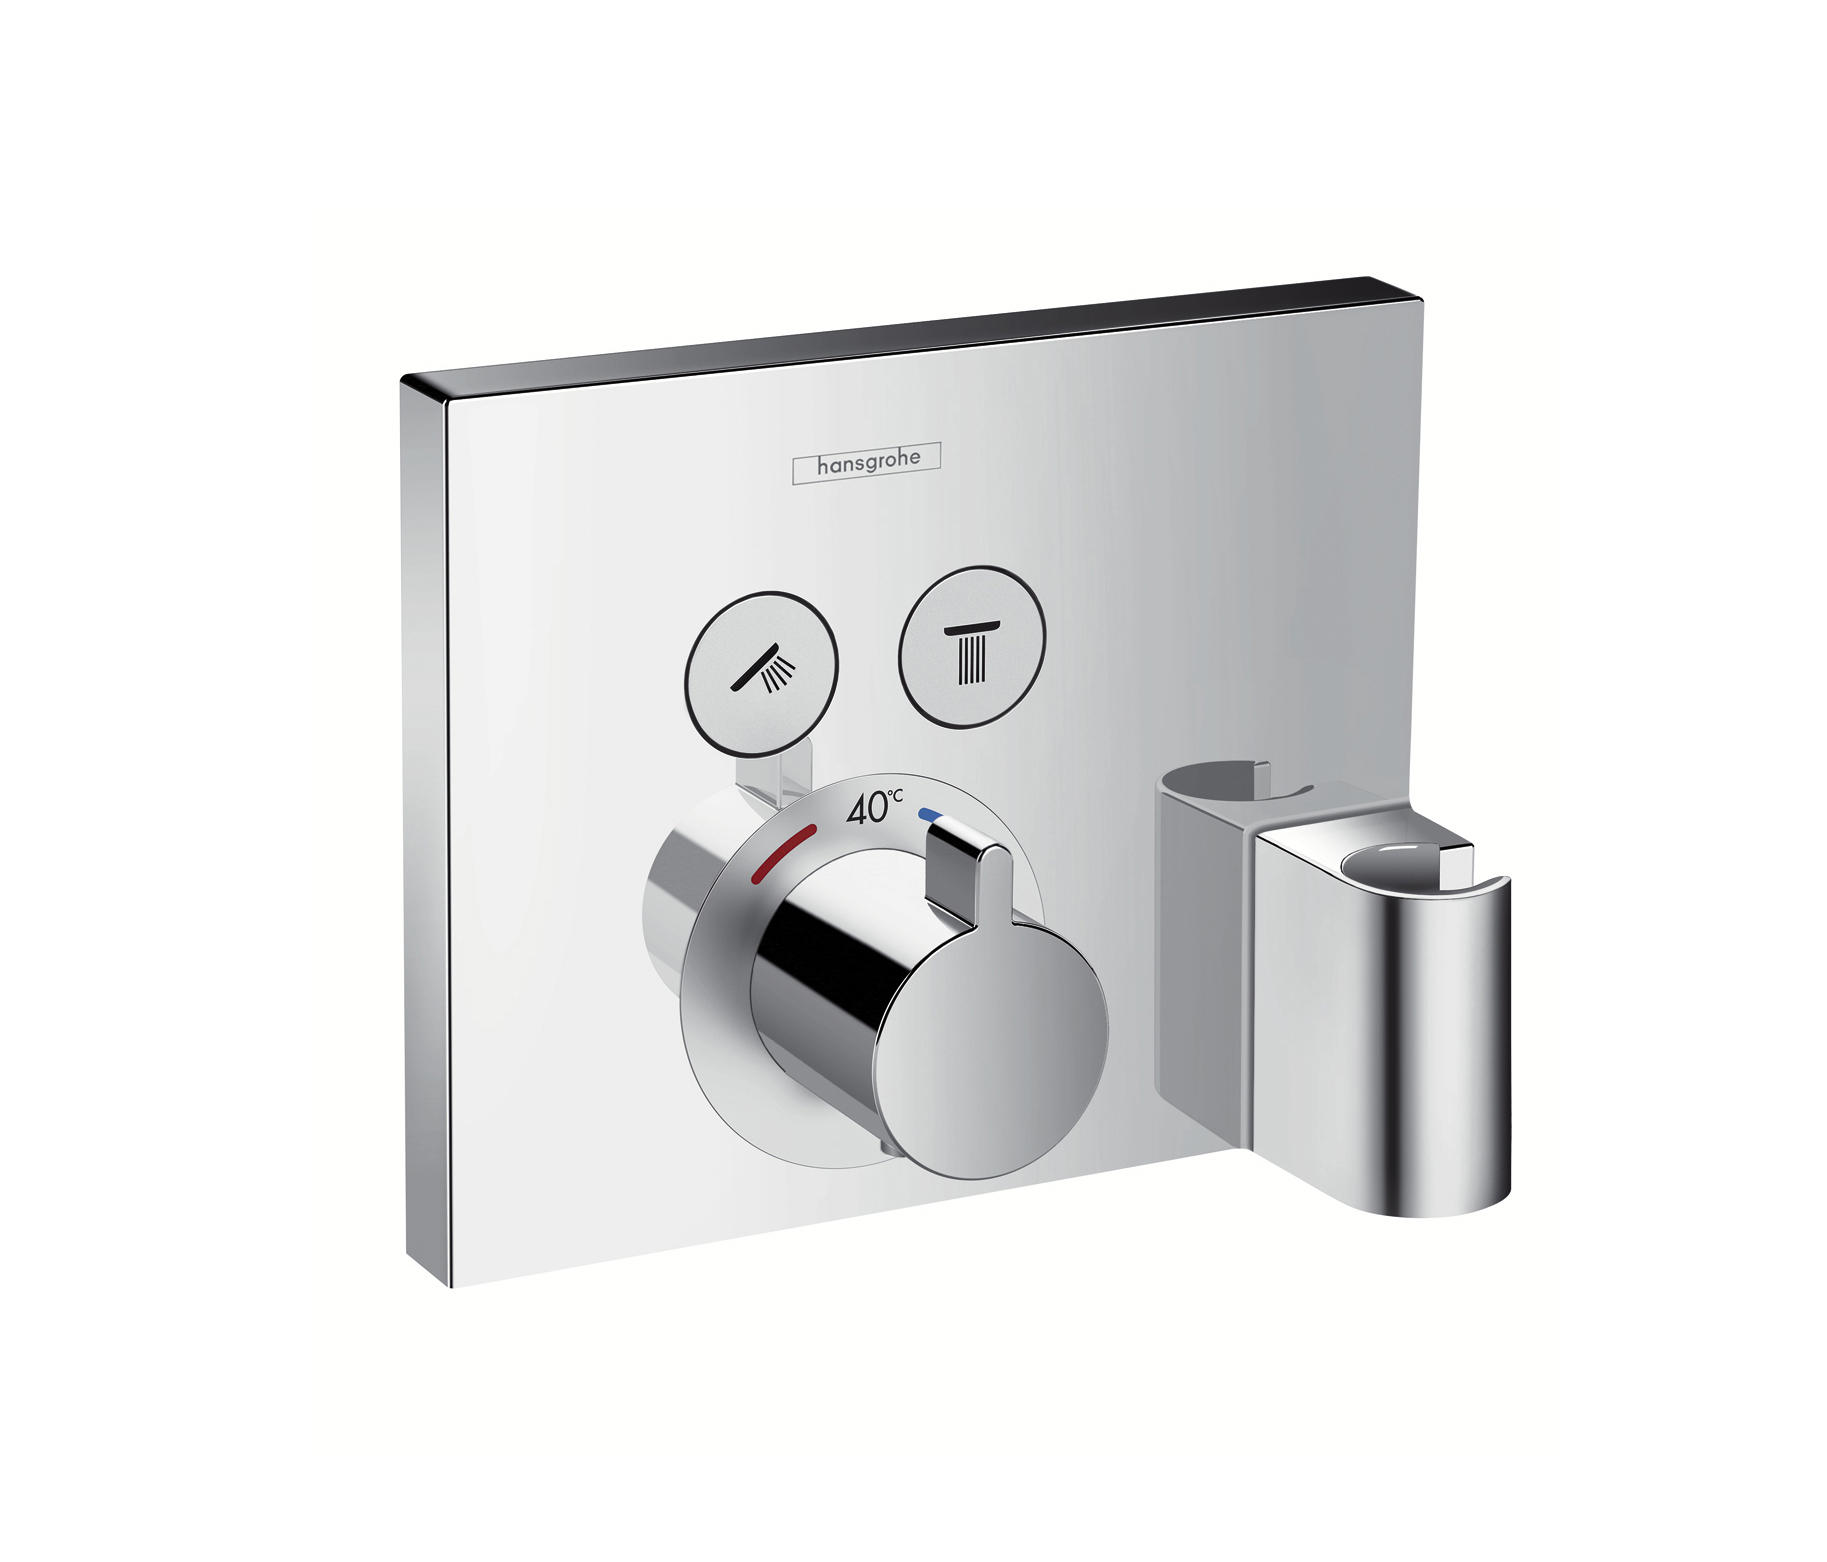 hansgrohe hg ecostat select thermostat up fertigset 2 av. Black Bedroom Furniture Sets. Home Design Ideas